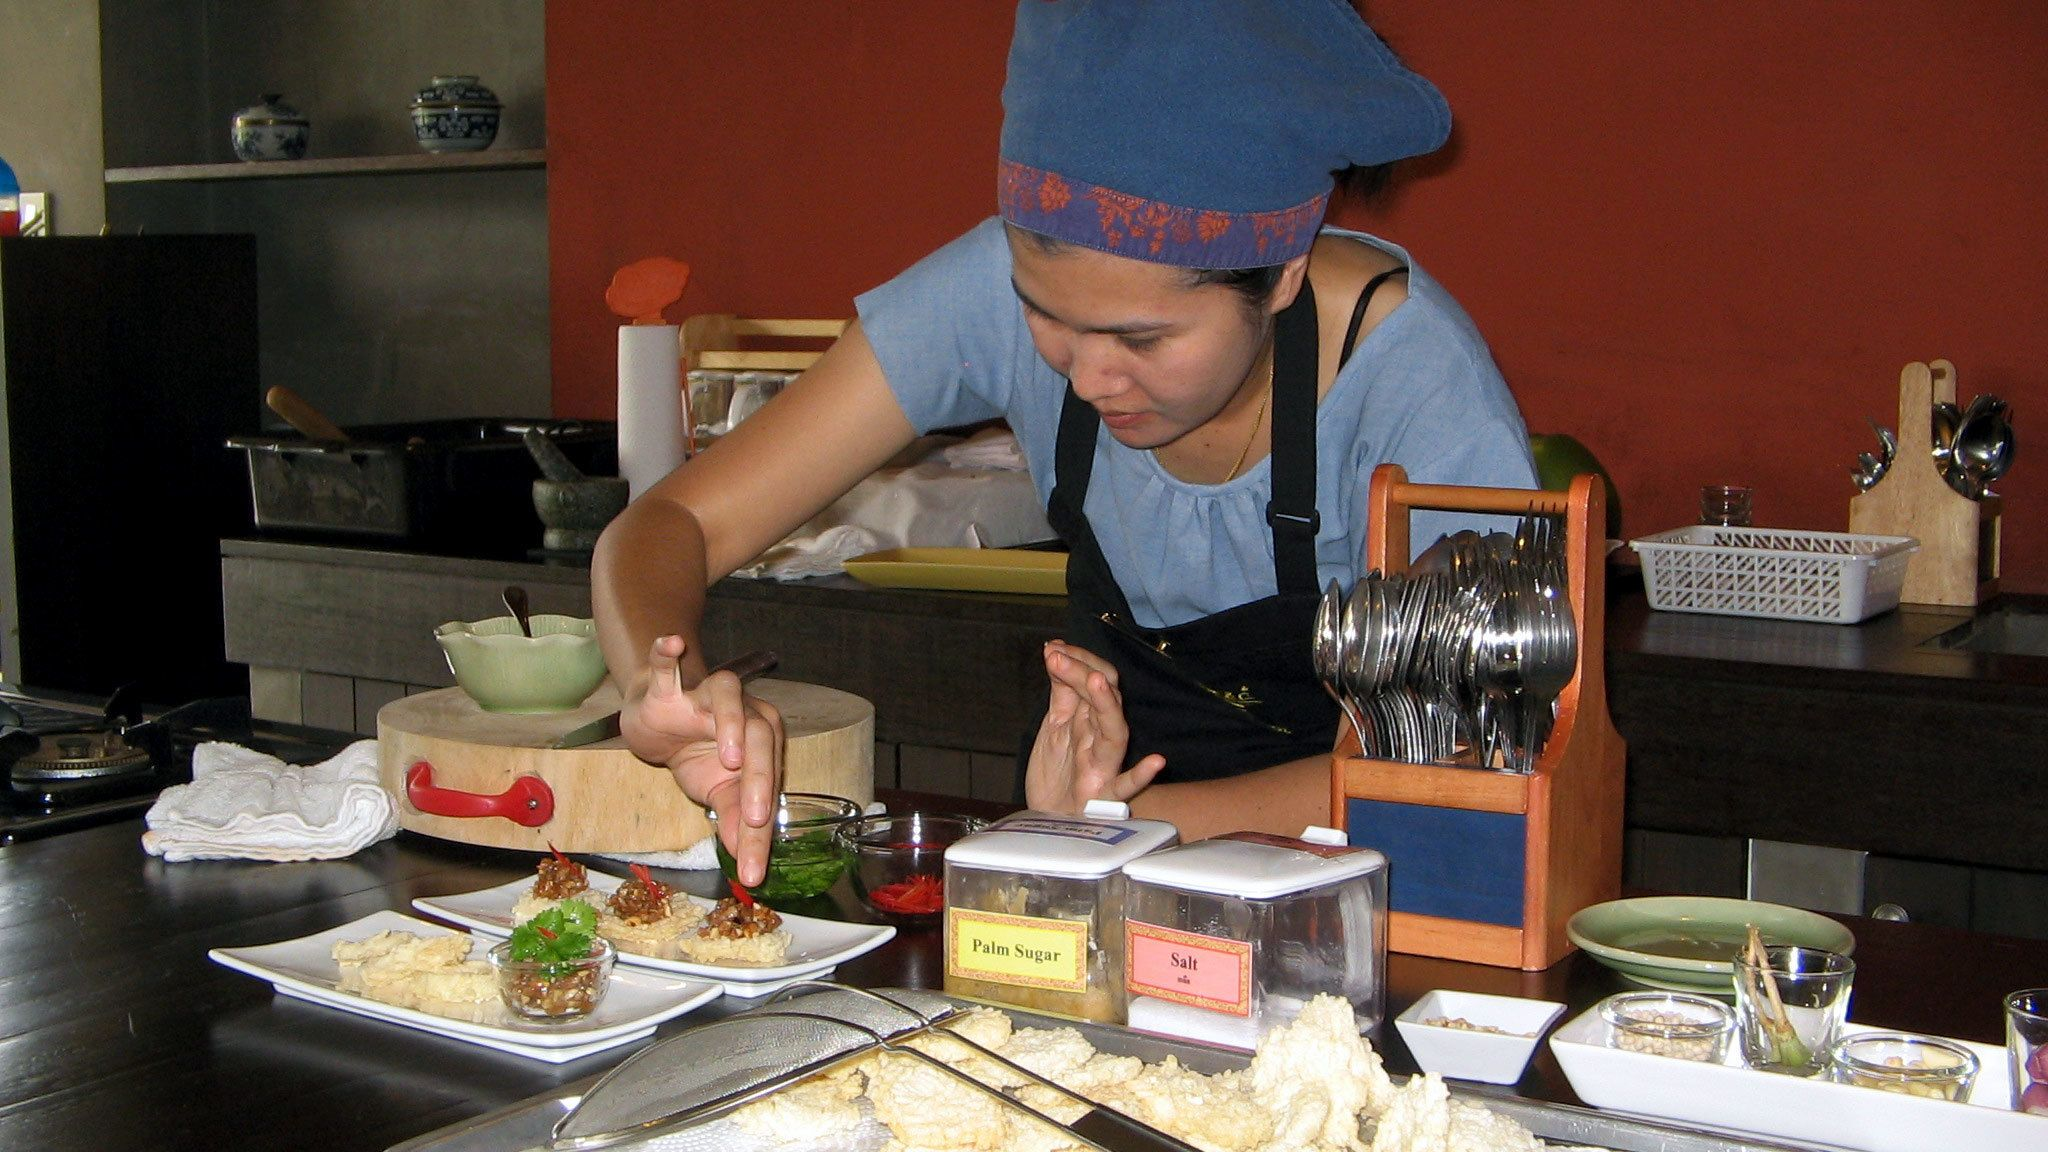 A cooking instructor plating food at a class in Bangkok